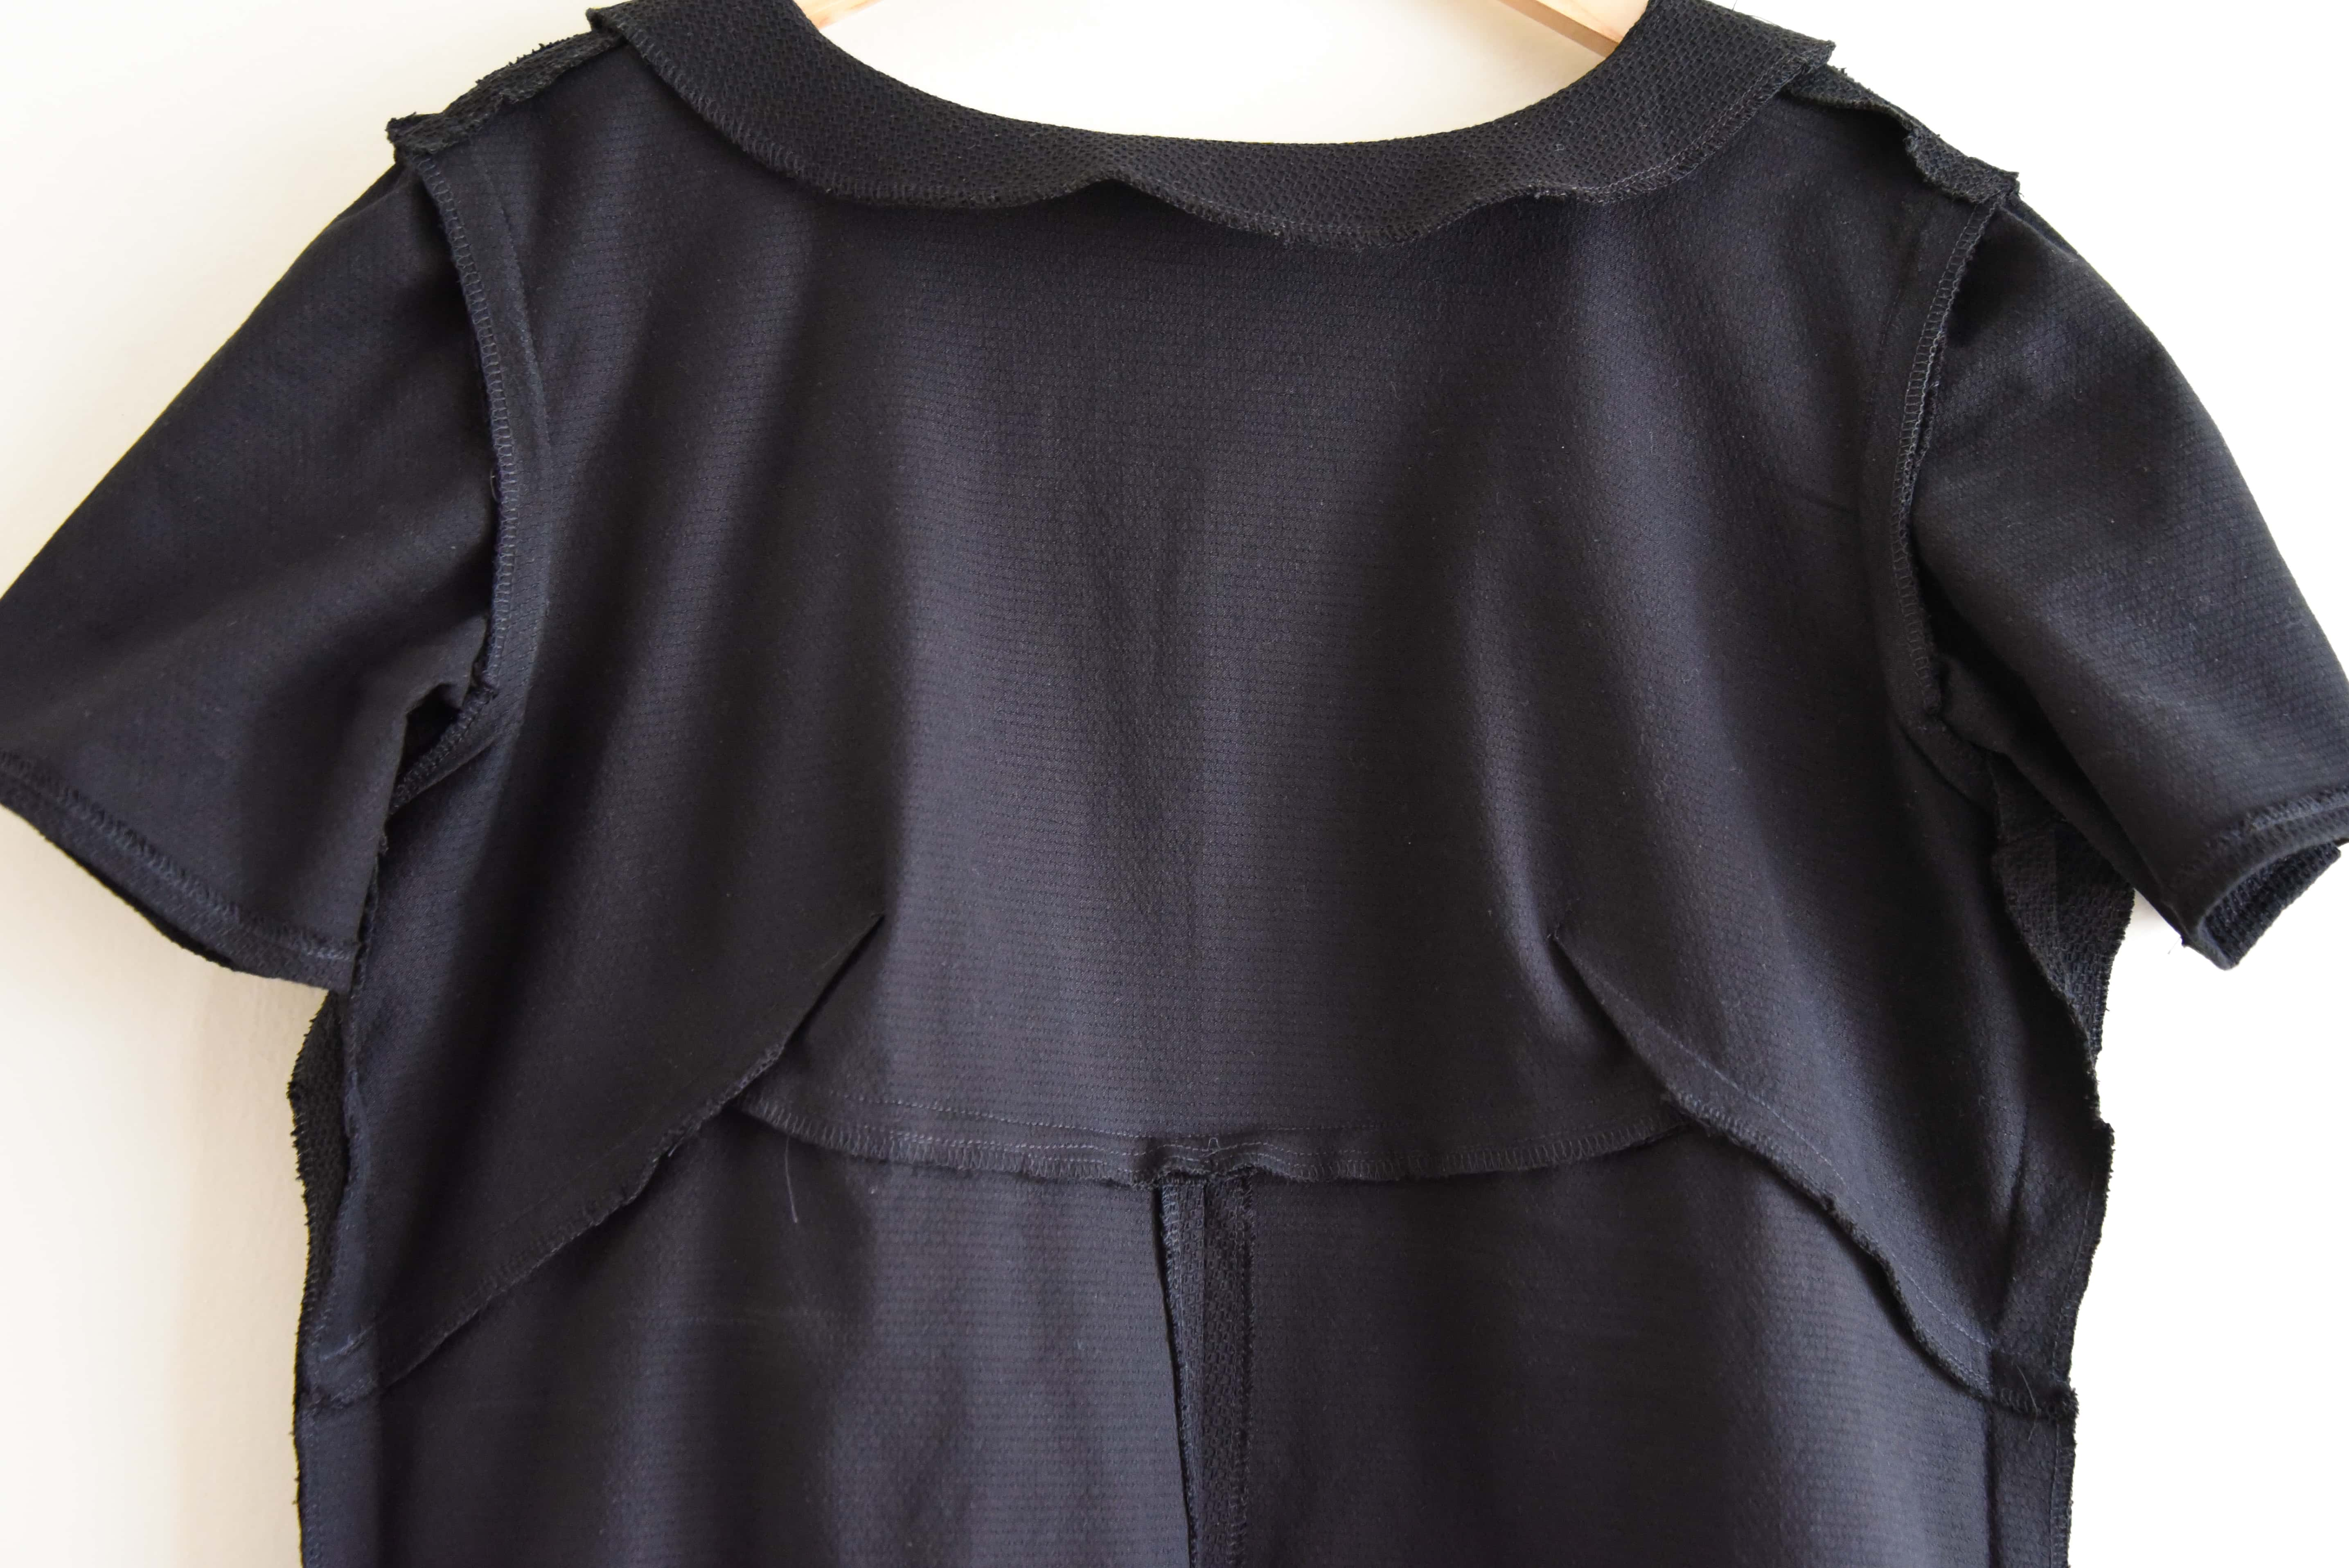 Image of inside of bodice for Simplicity 3833 with seams finished with a serger